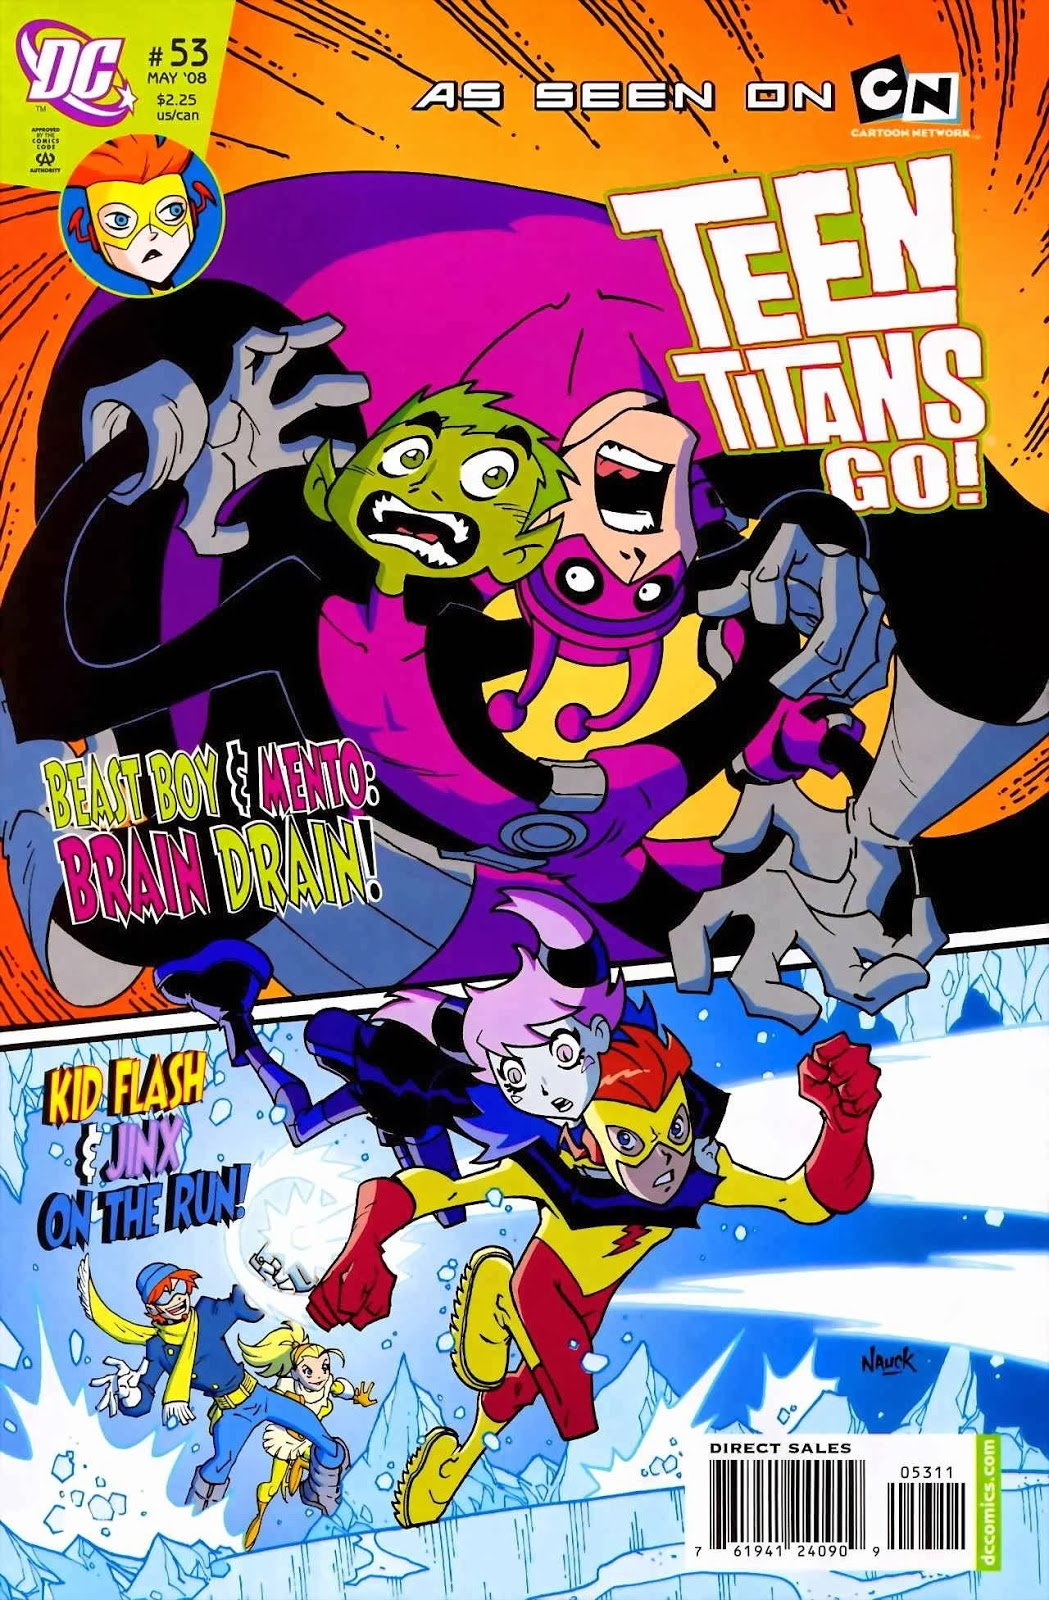 from Vicente hot teen titans go porn